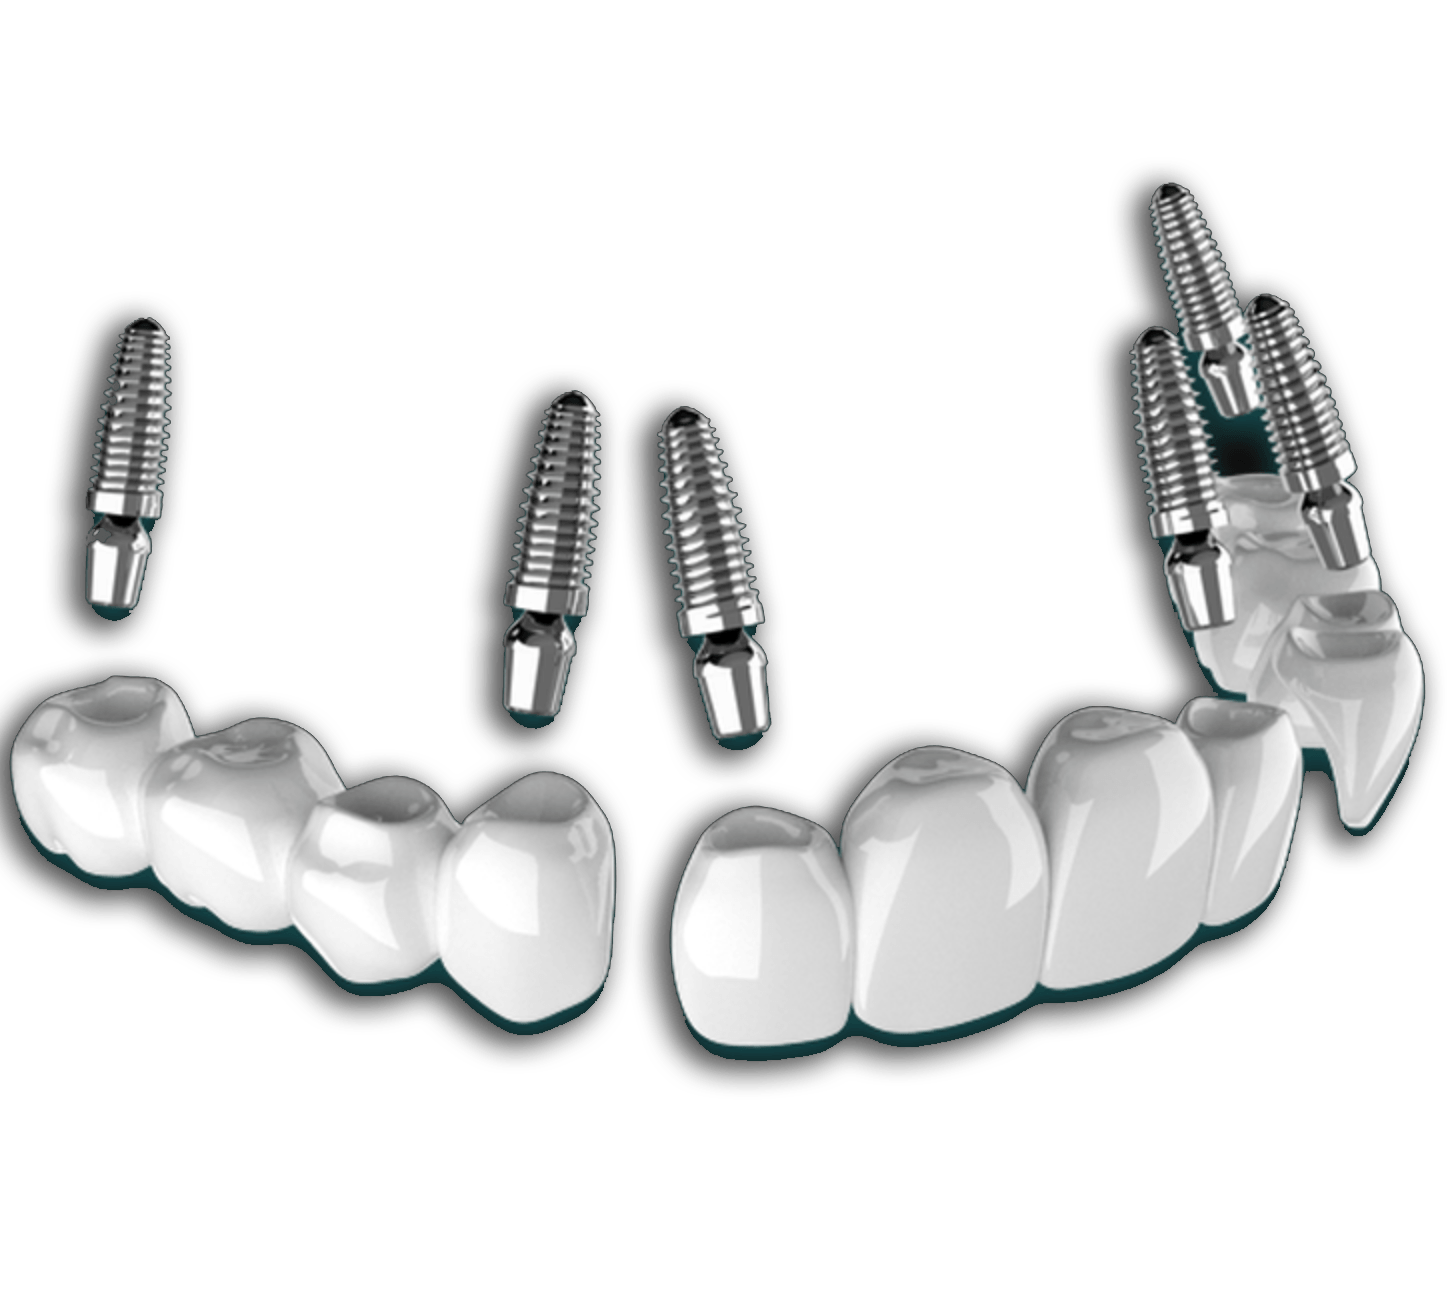 3 on 6 dental implants in mexico by dr moguel